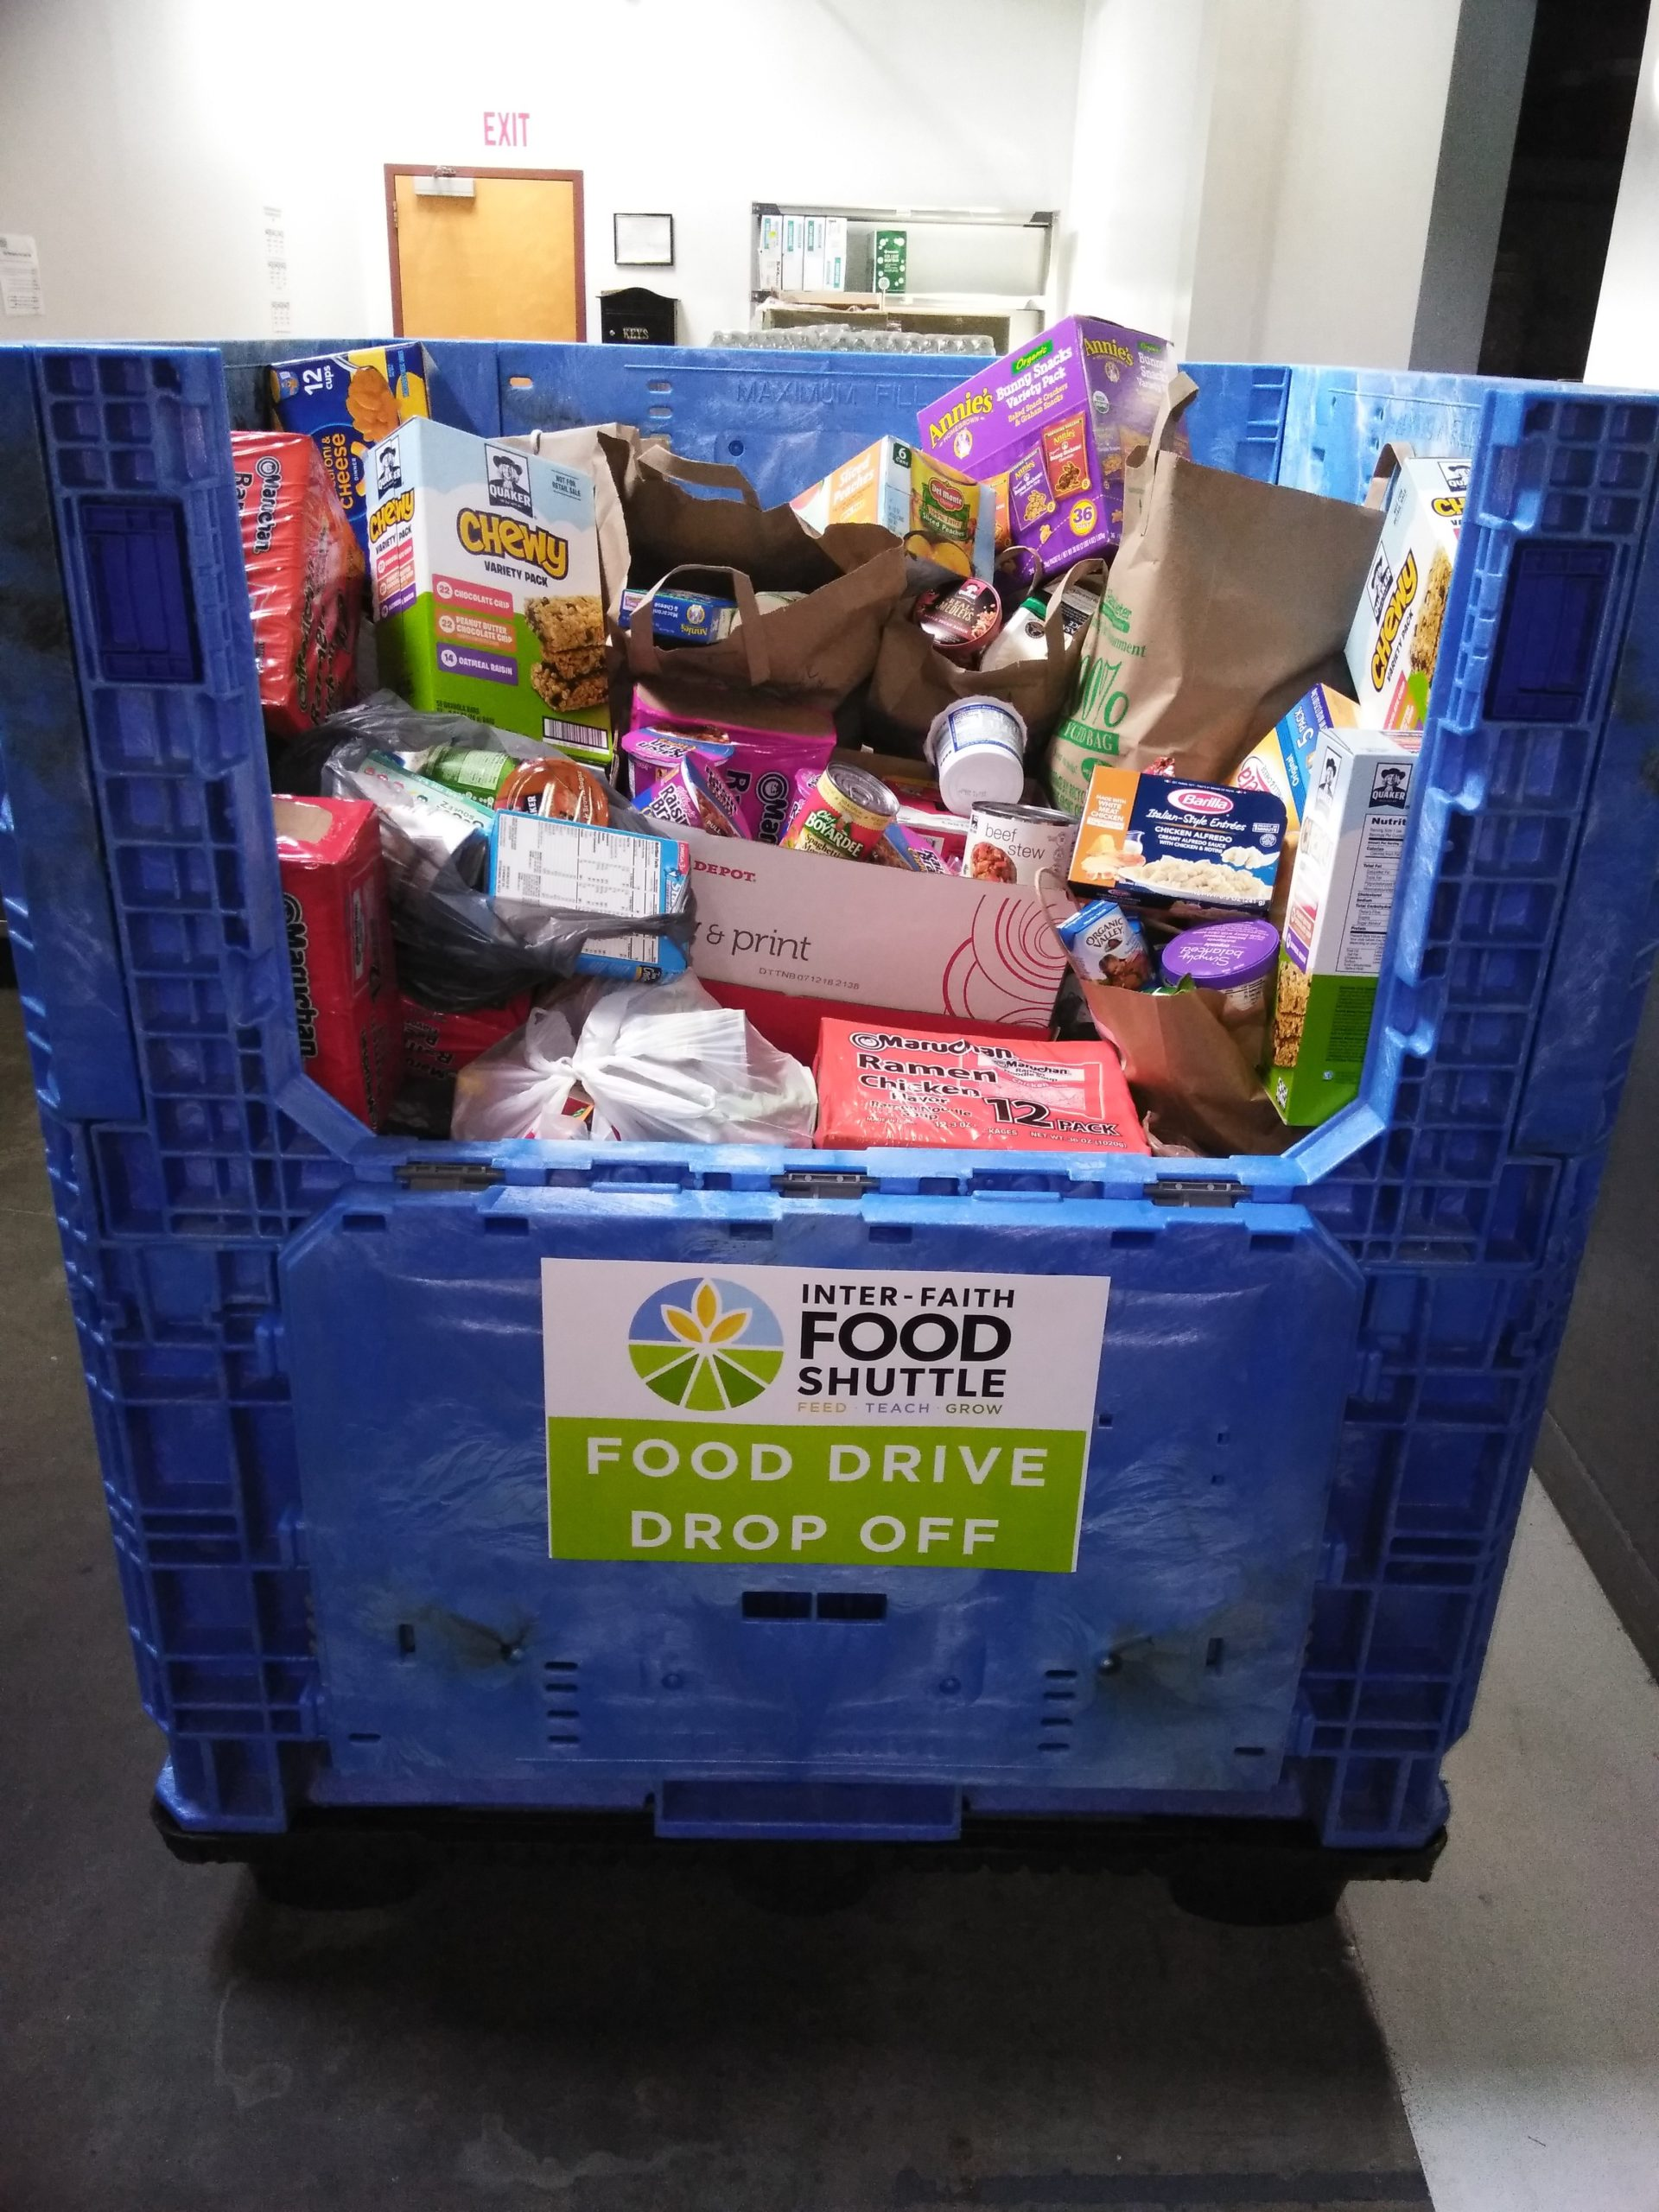 A snapshot of the food drive donation bin at the IFFS. Photo courtesy of Laura Clay